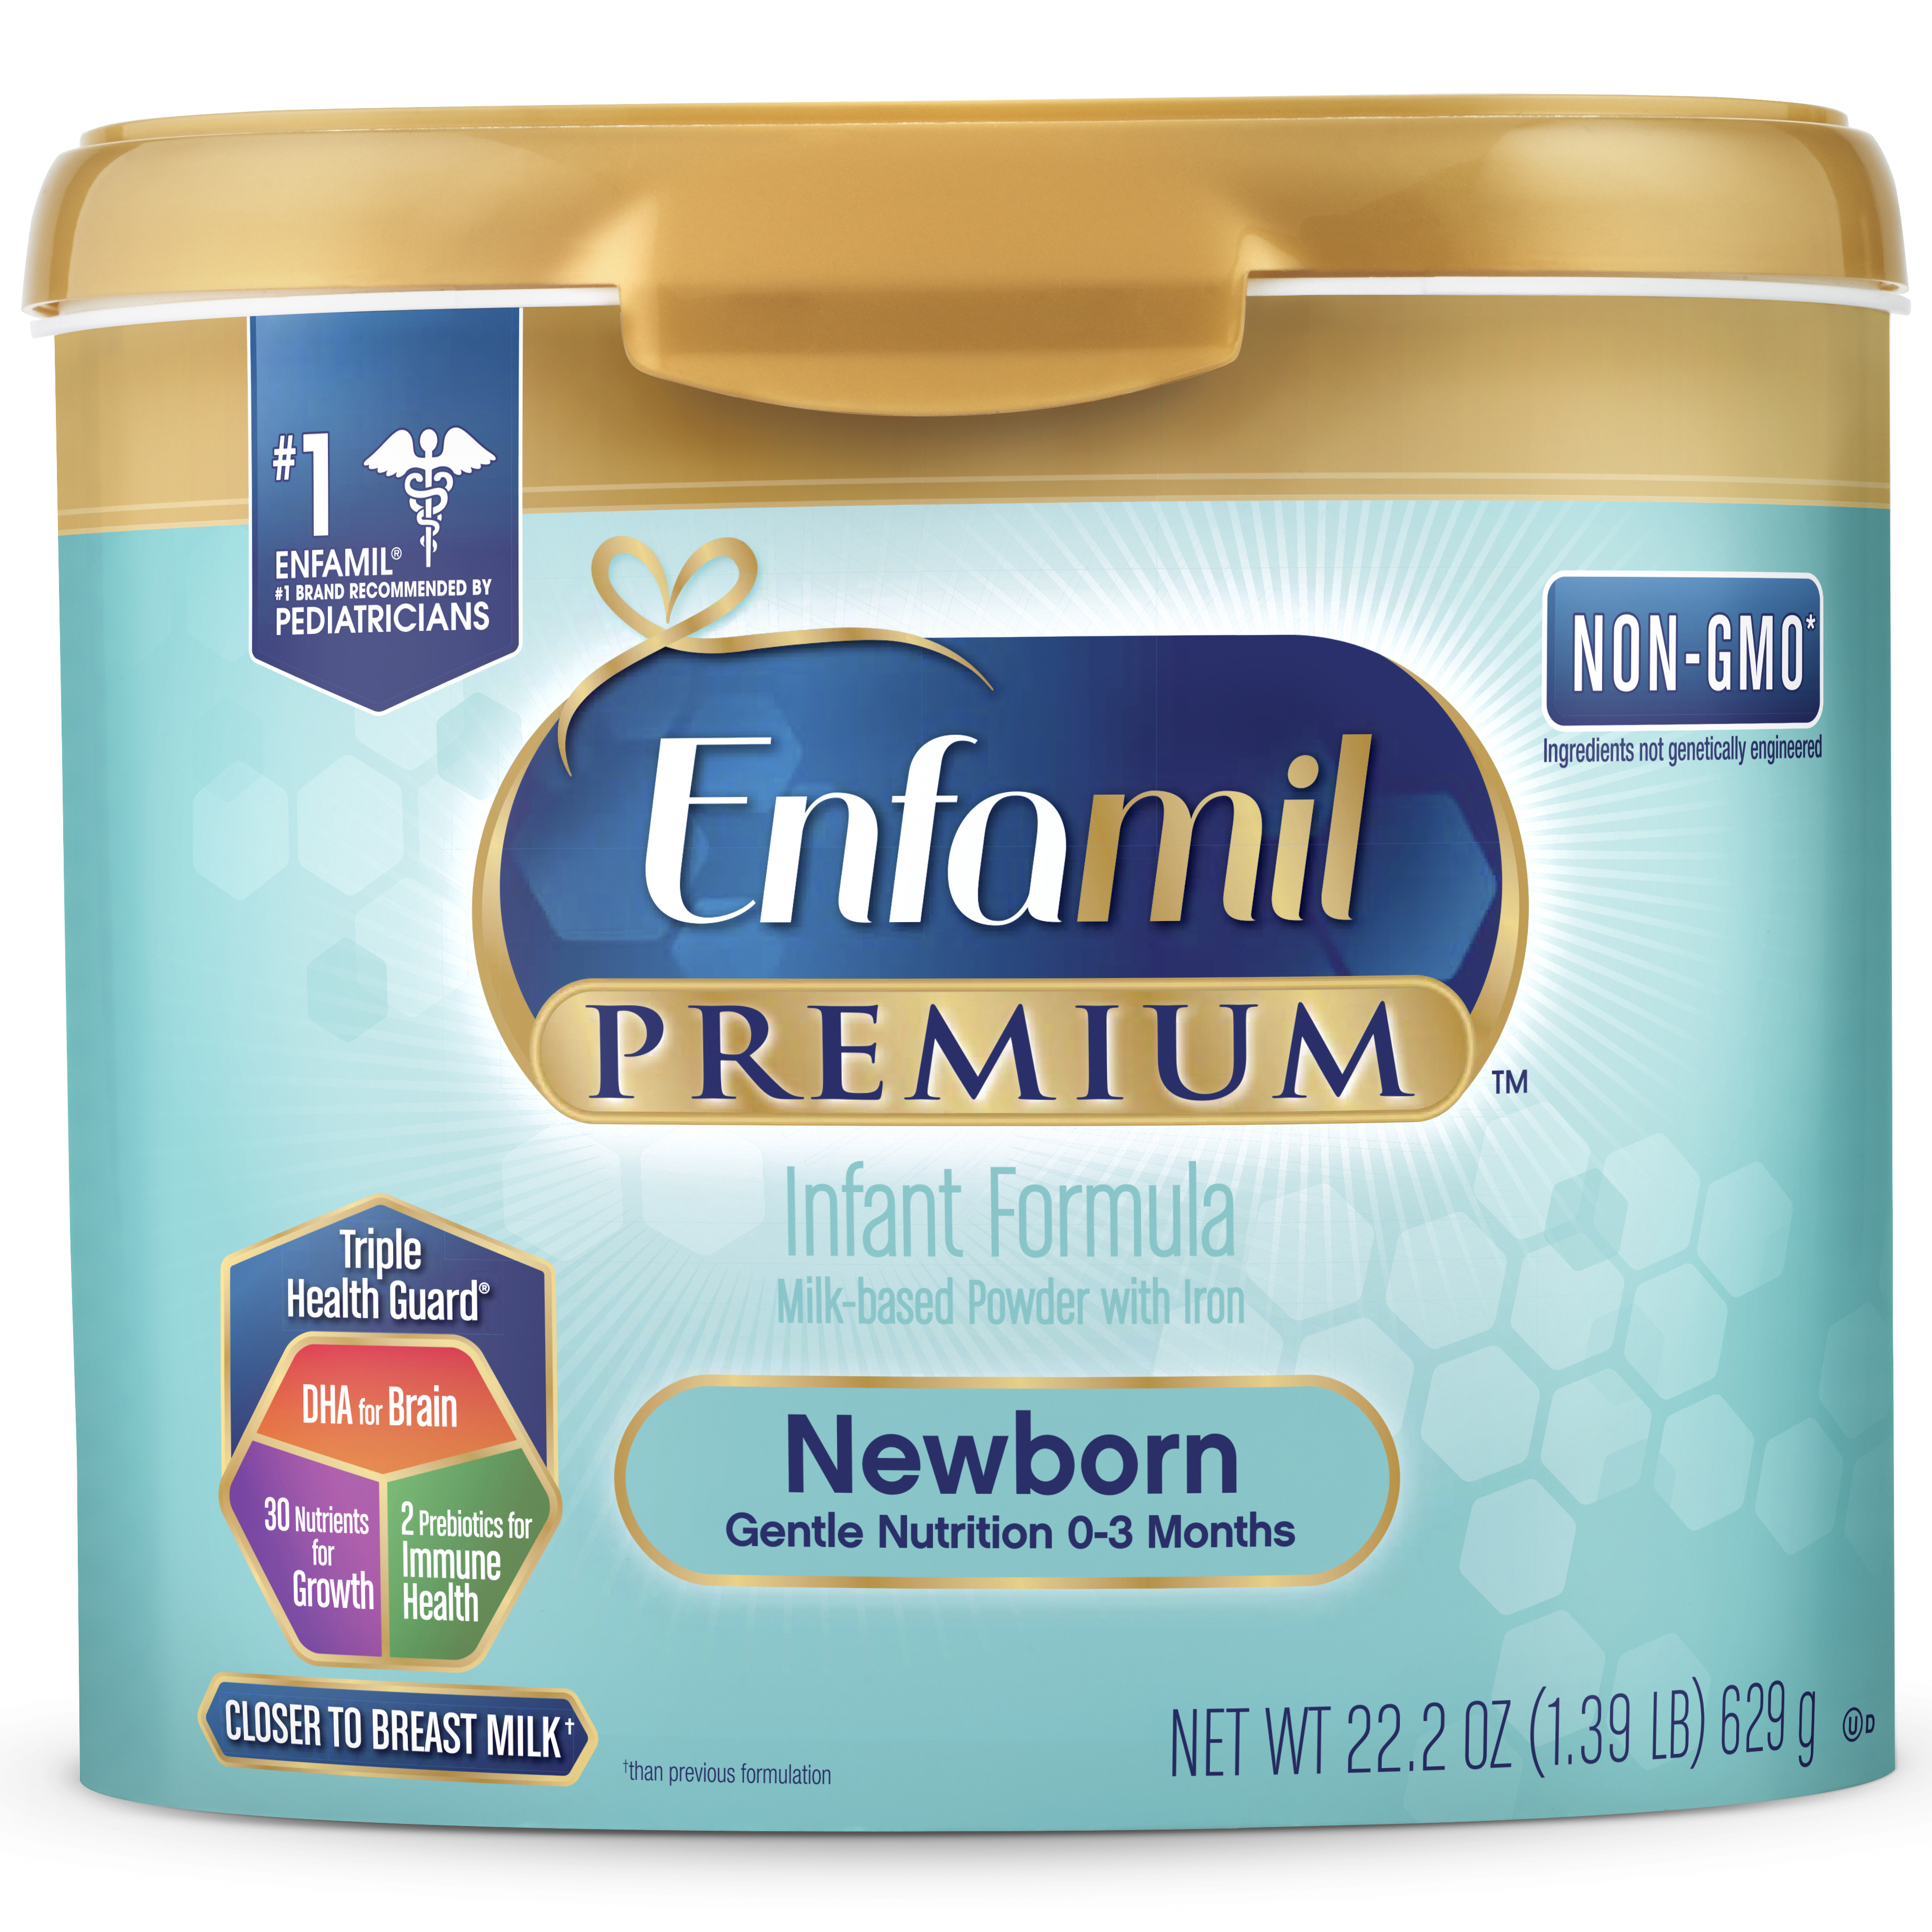 Enfamil Newborn PREMIUM Infant Formula, Powder, 22.2 oz Reusable Tub